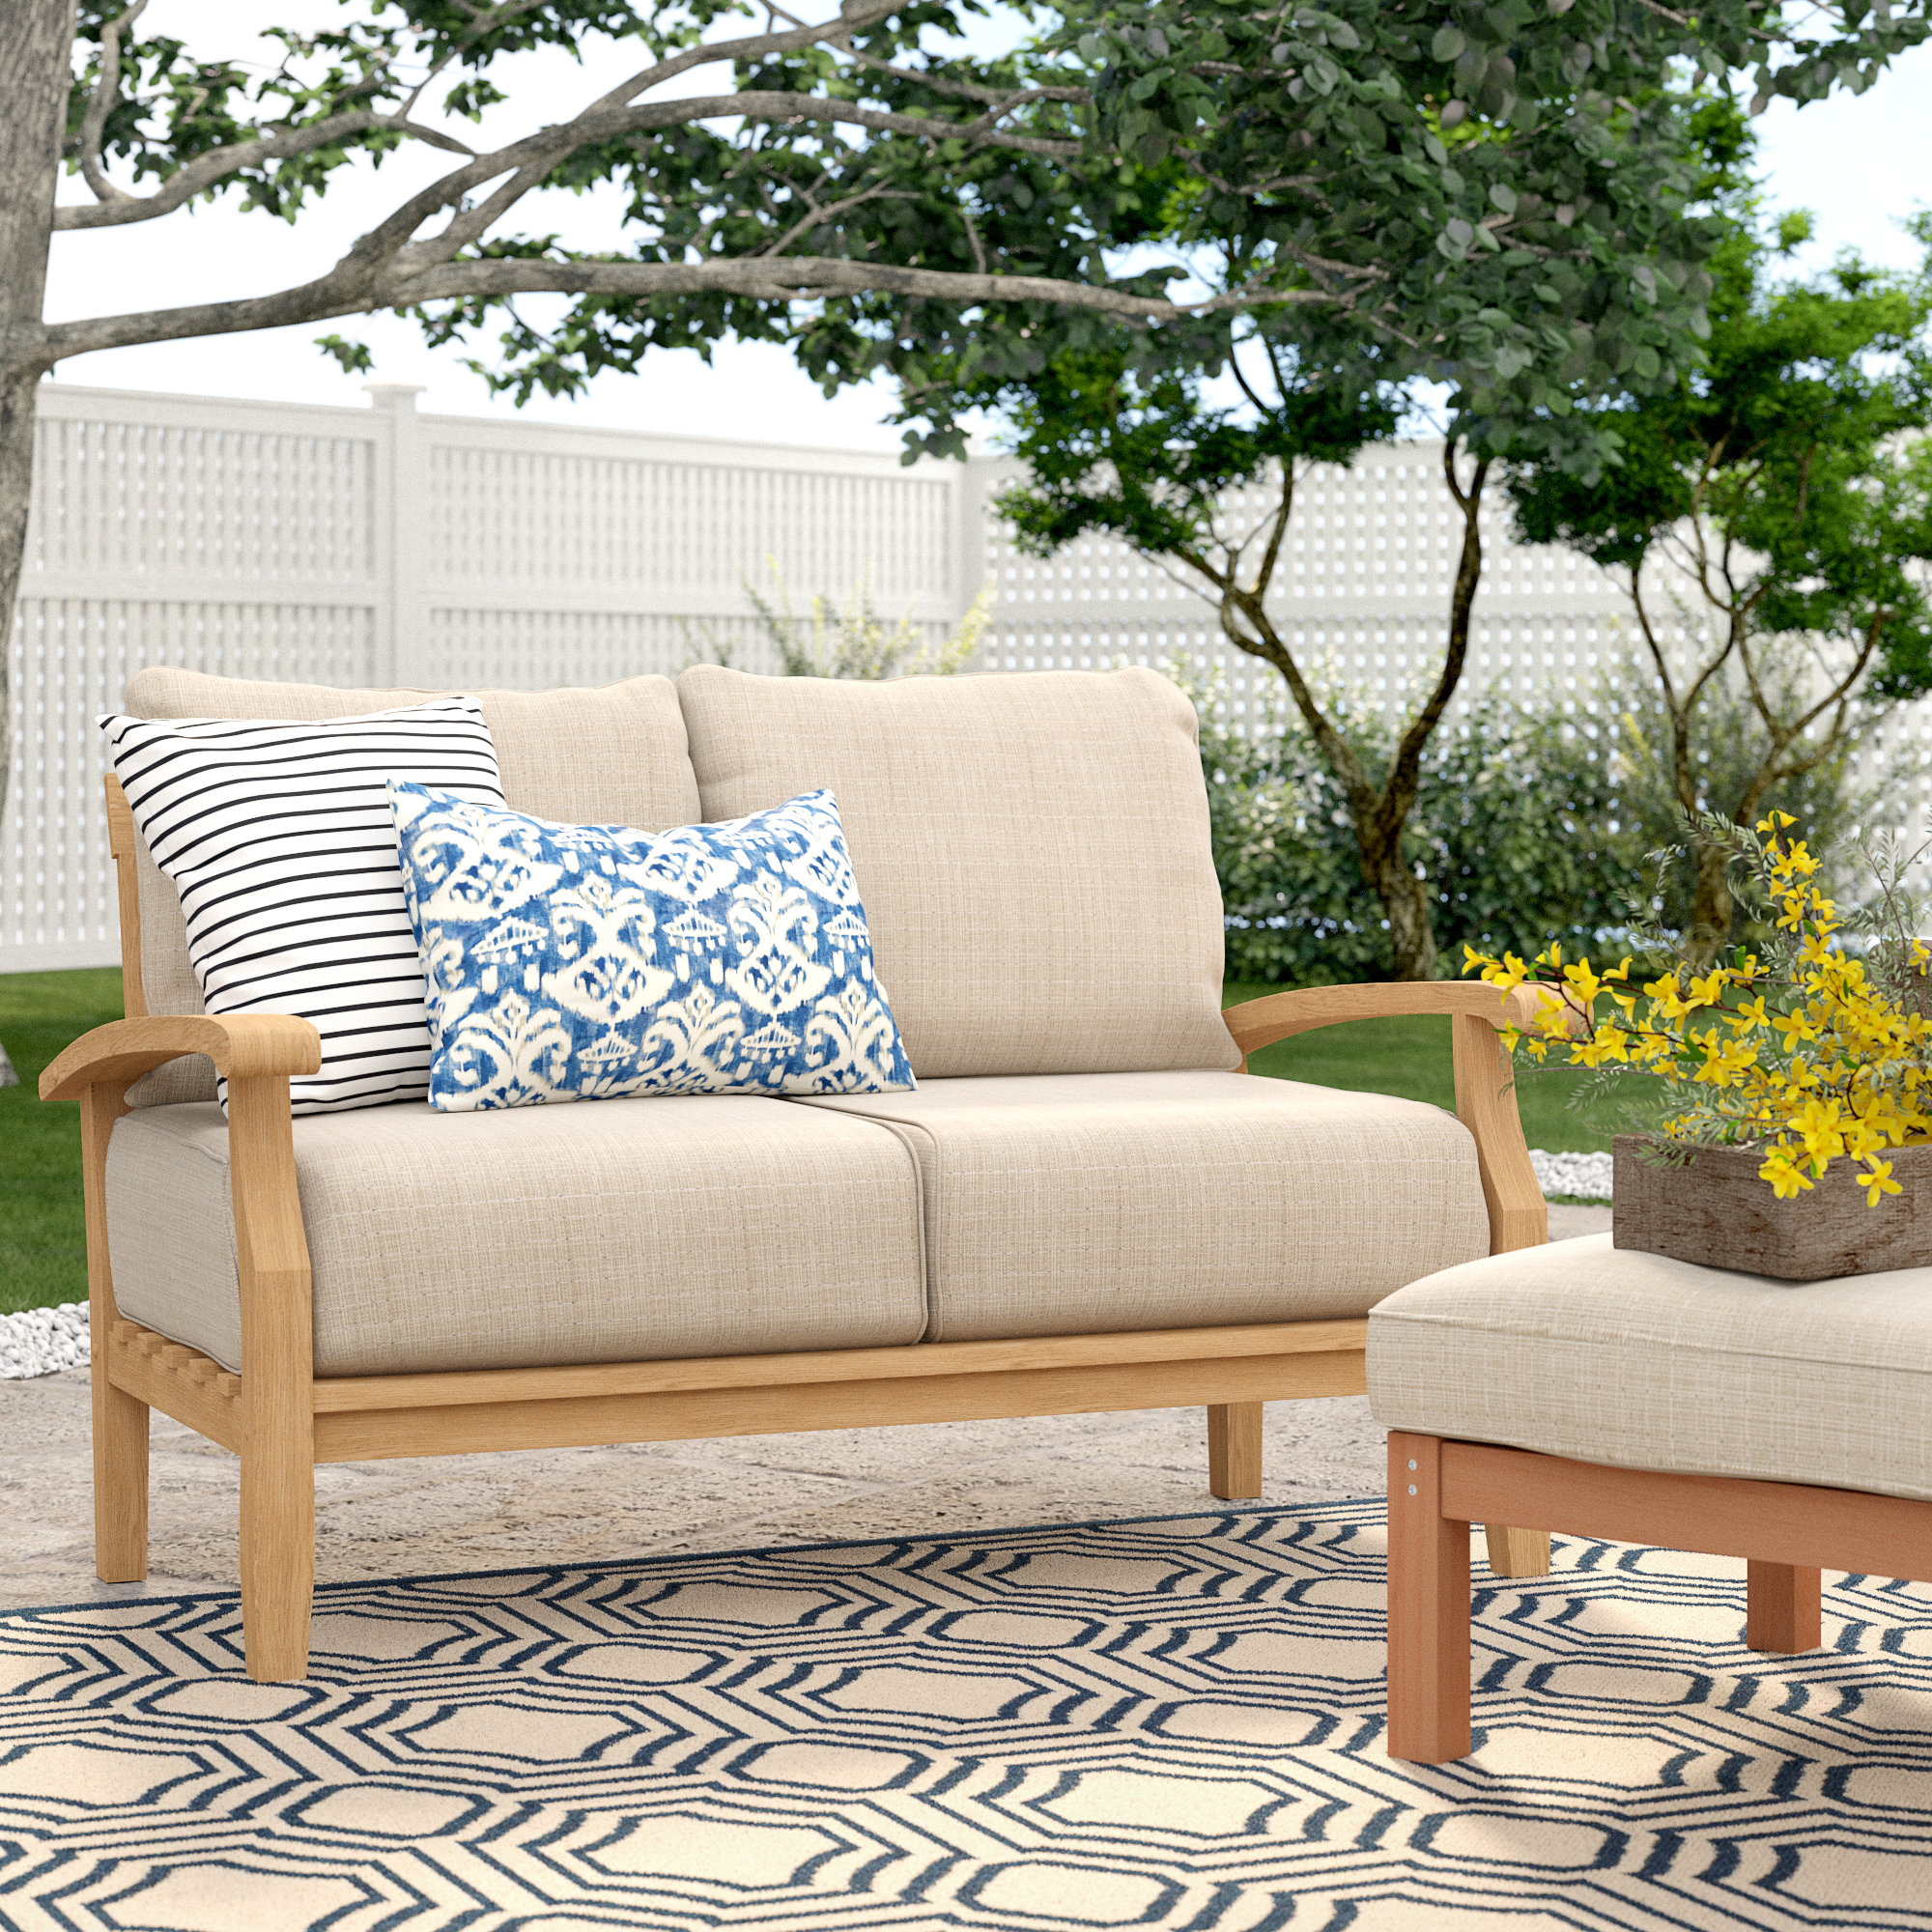 Current Clary Teak Lounge Patio Daybeds With Cushion In Farmhouse & Rustic Teak Outdoor Furniture (View 10 of 20)